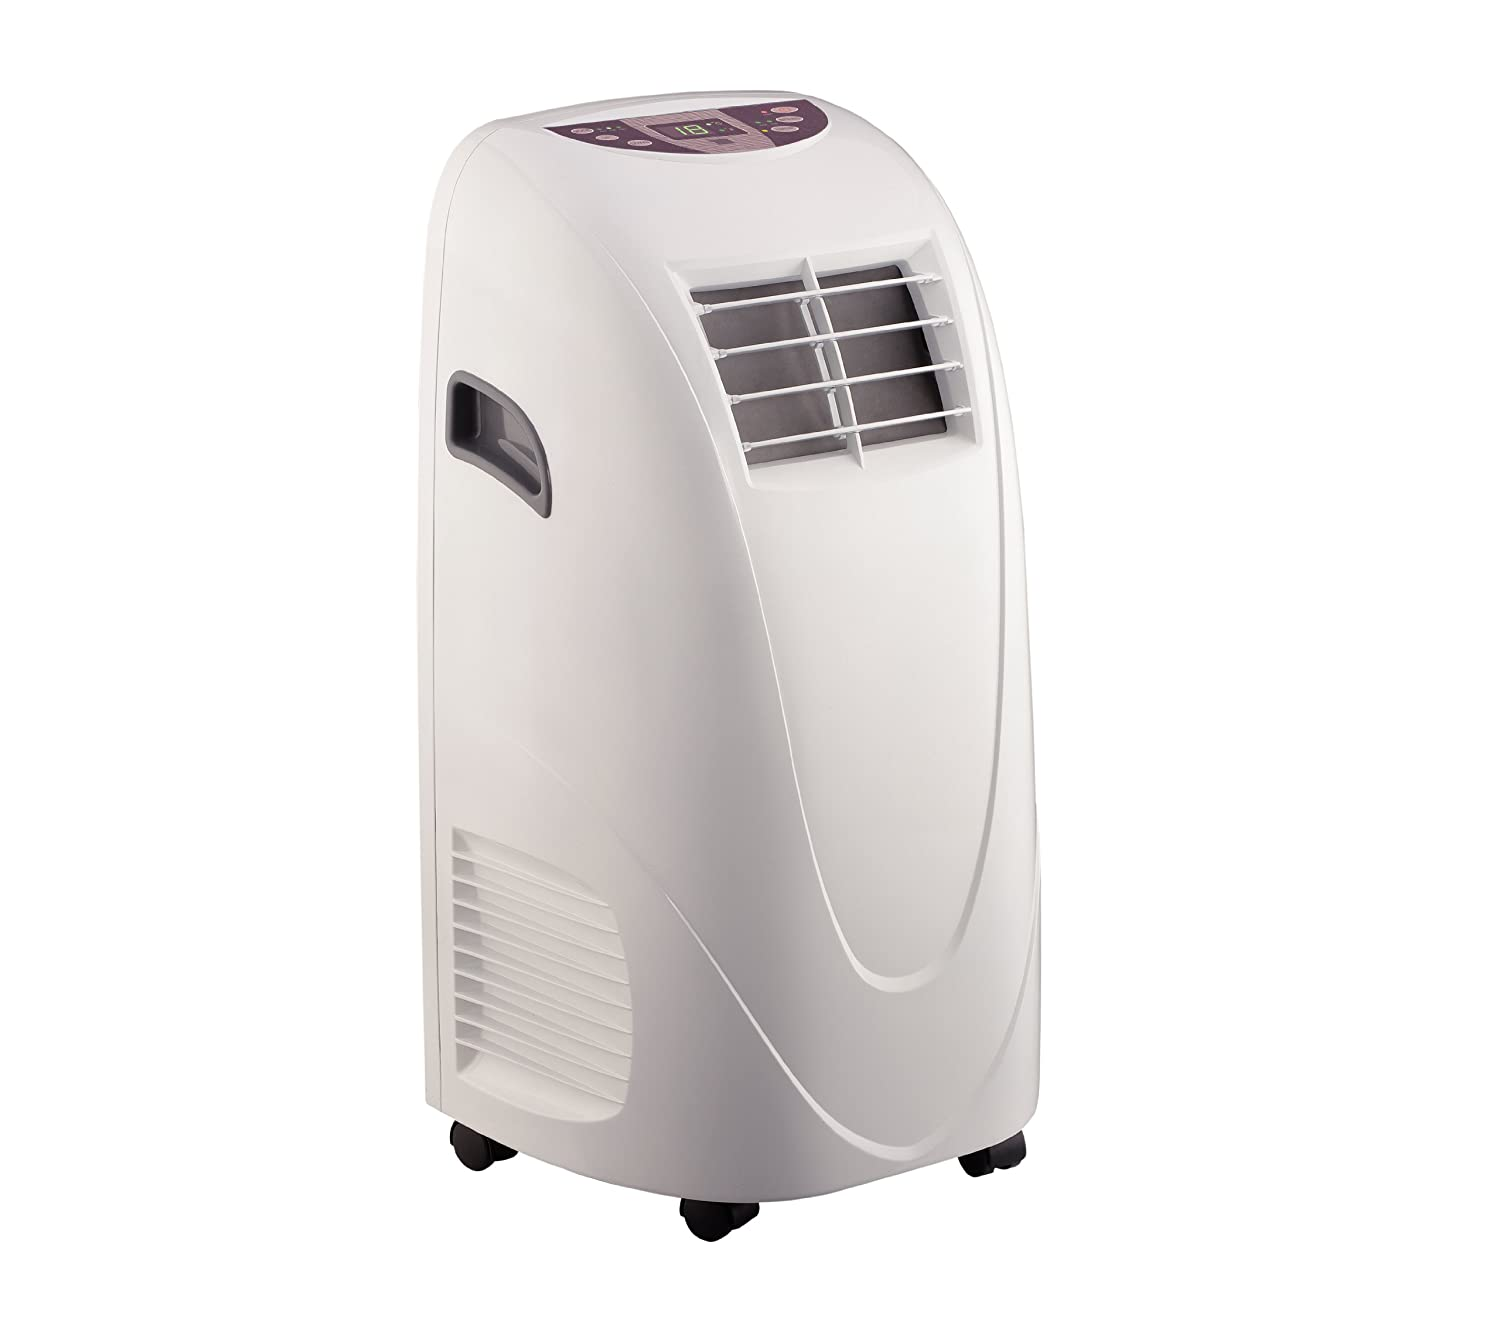 Top 10 Best Portable Air Conditioner Reviews in 2020 7